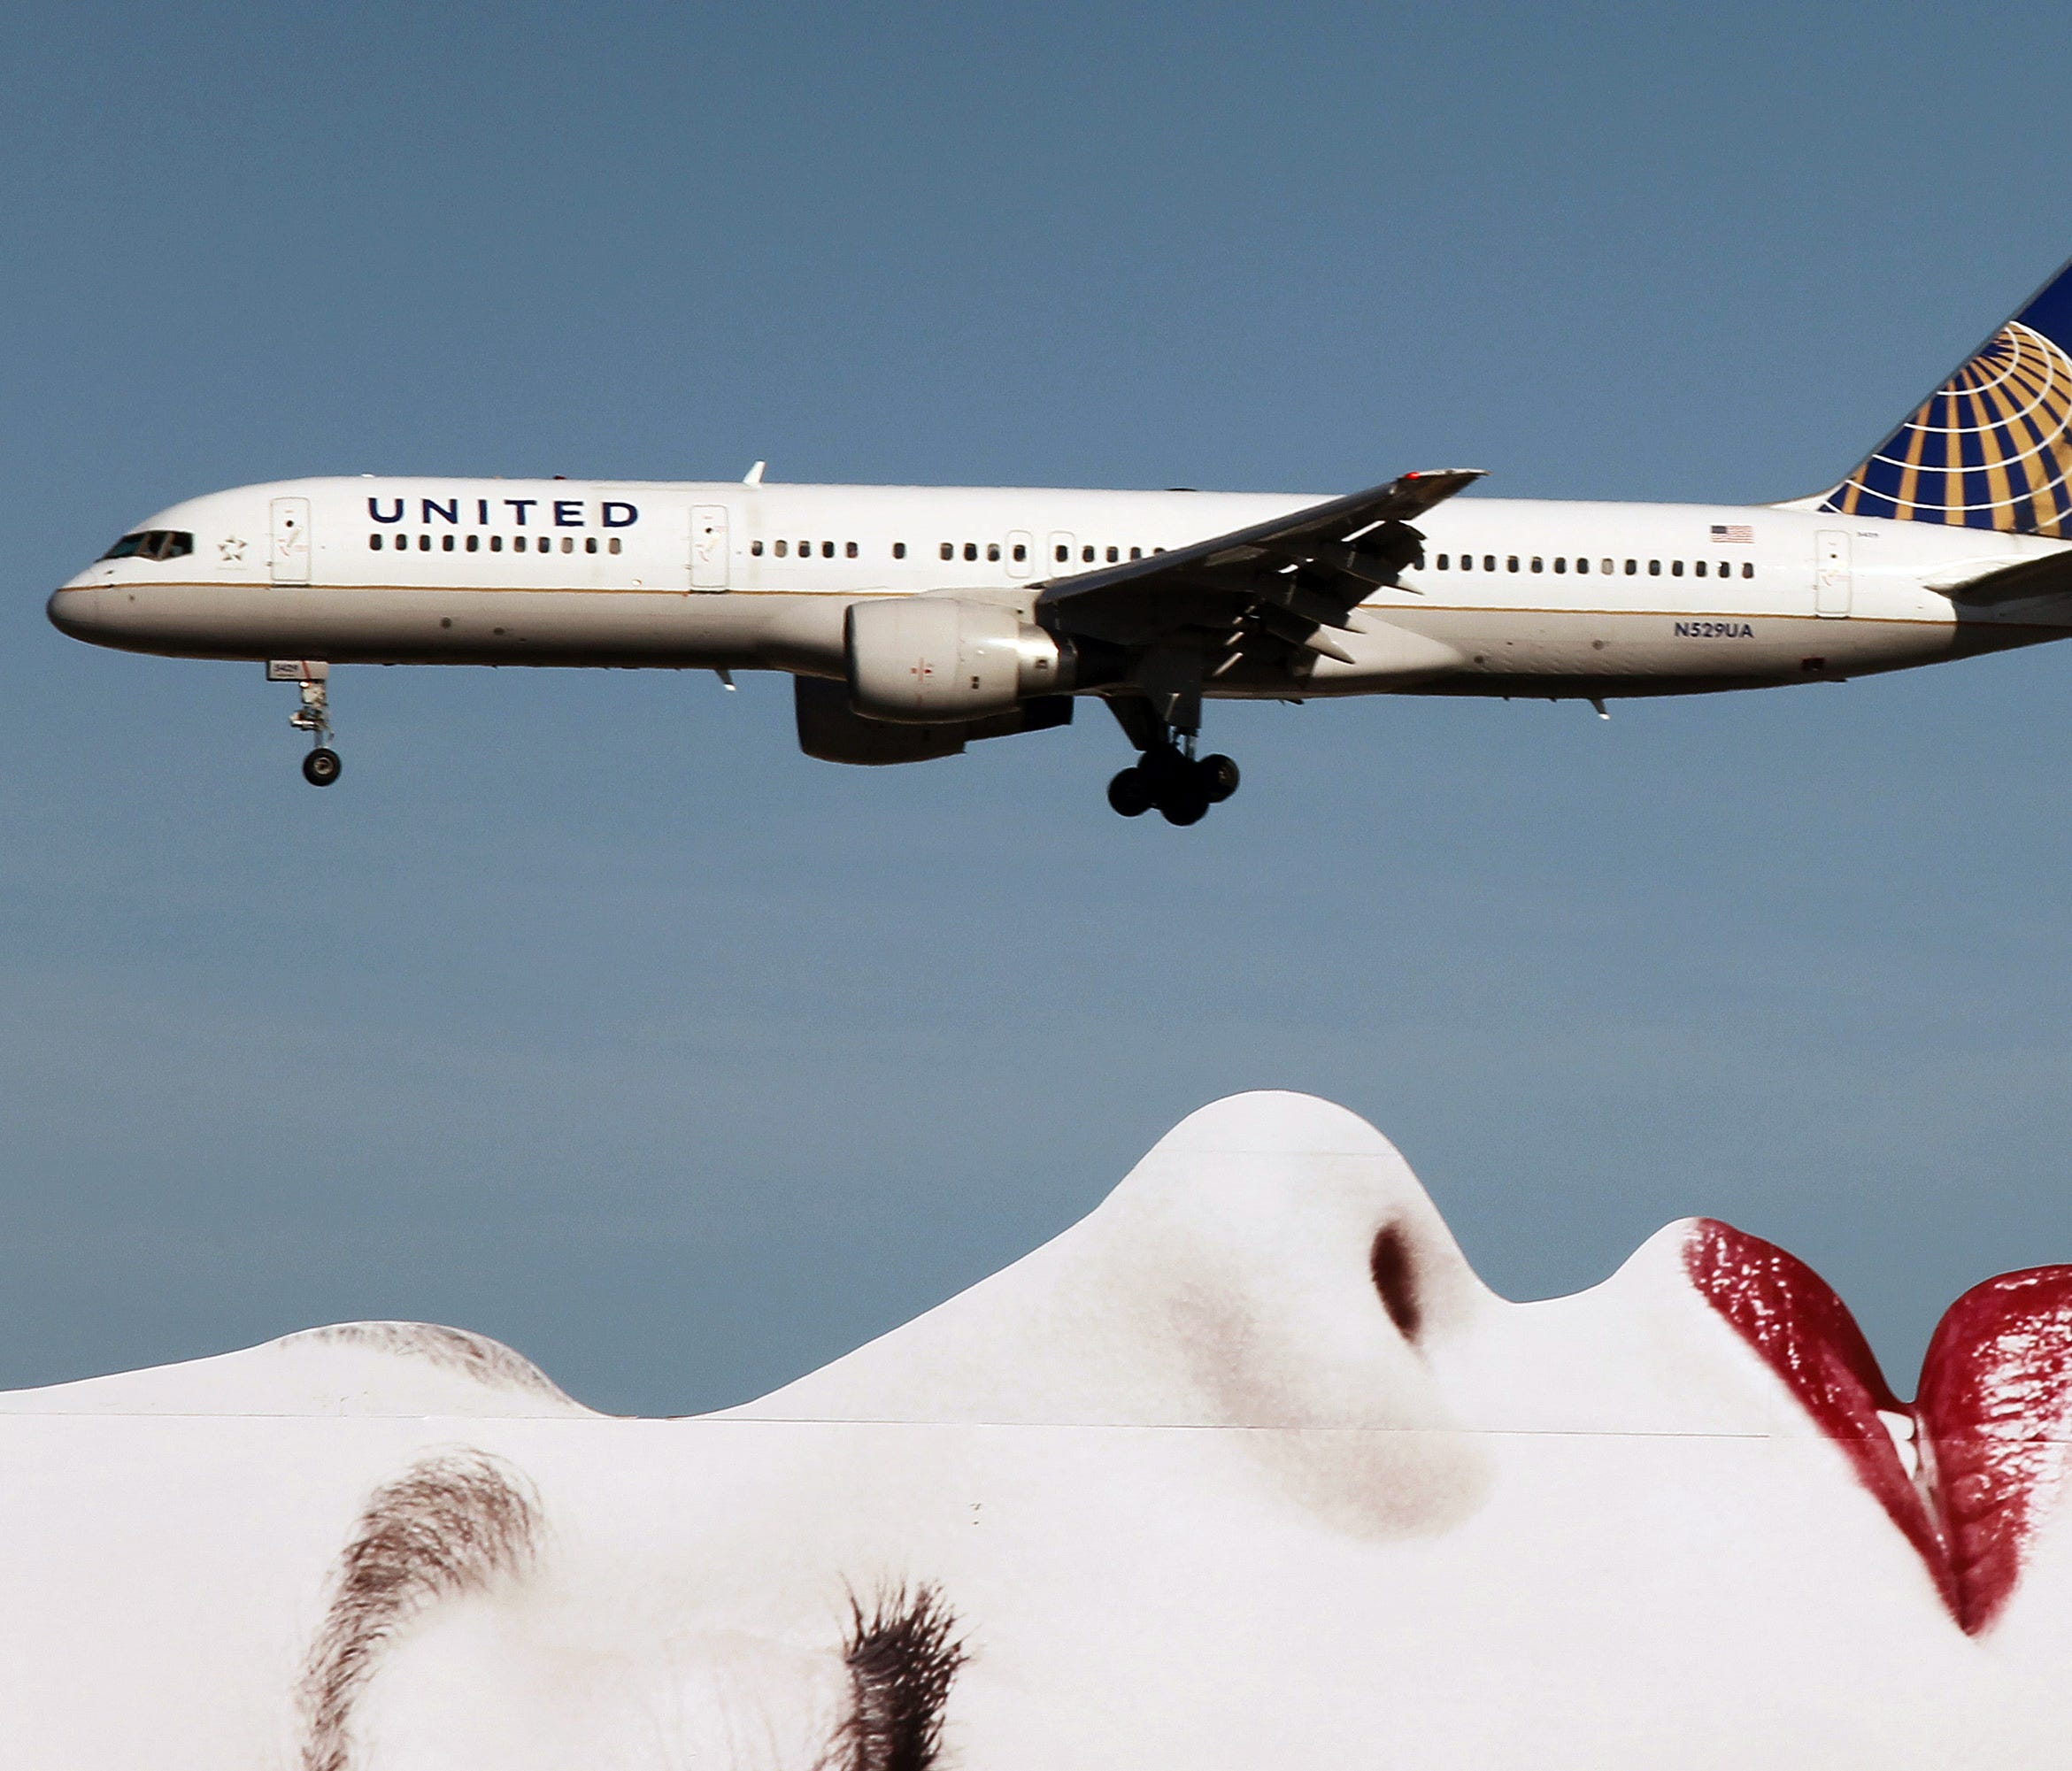 A United Airlines Boeing 757 passes a billboard on approach to Los Angeles International Airport (LAX) on Jan. 17, 2013.